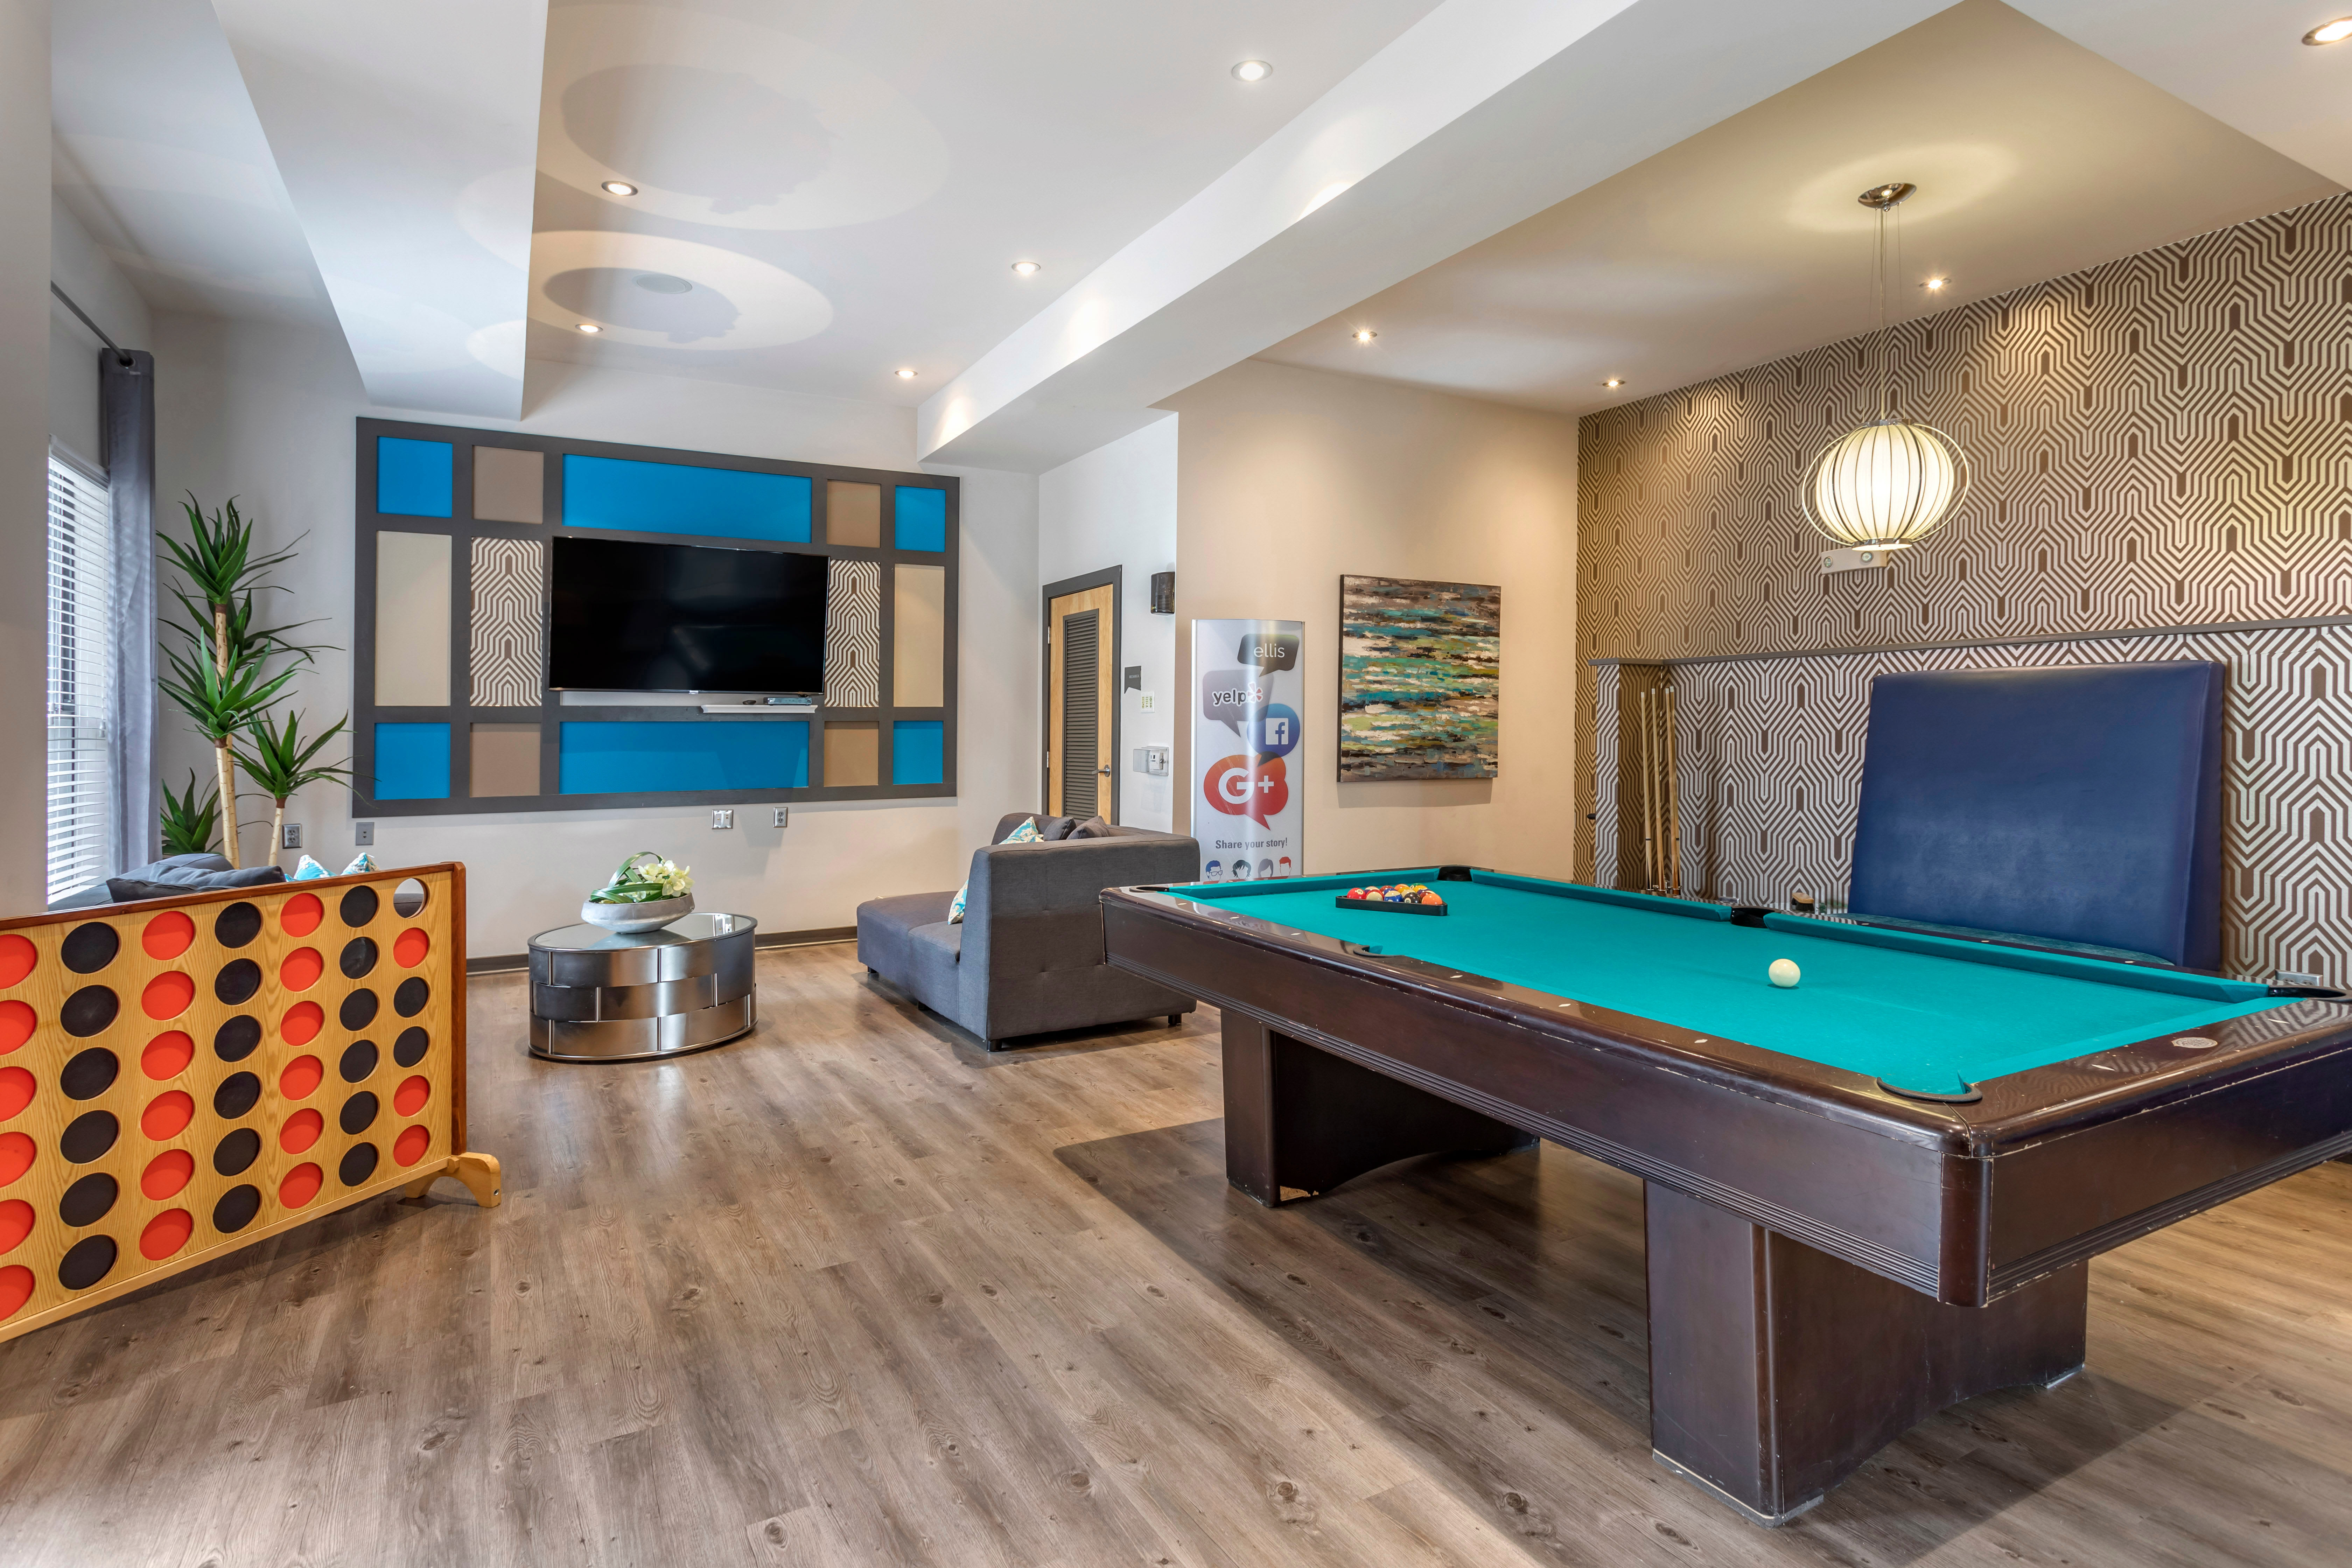 Billiards table in the game area of the clubhouse at Olympus Midtown in Nashville, Tennessee